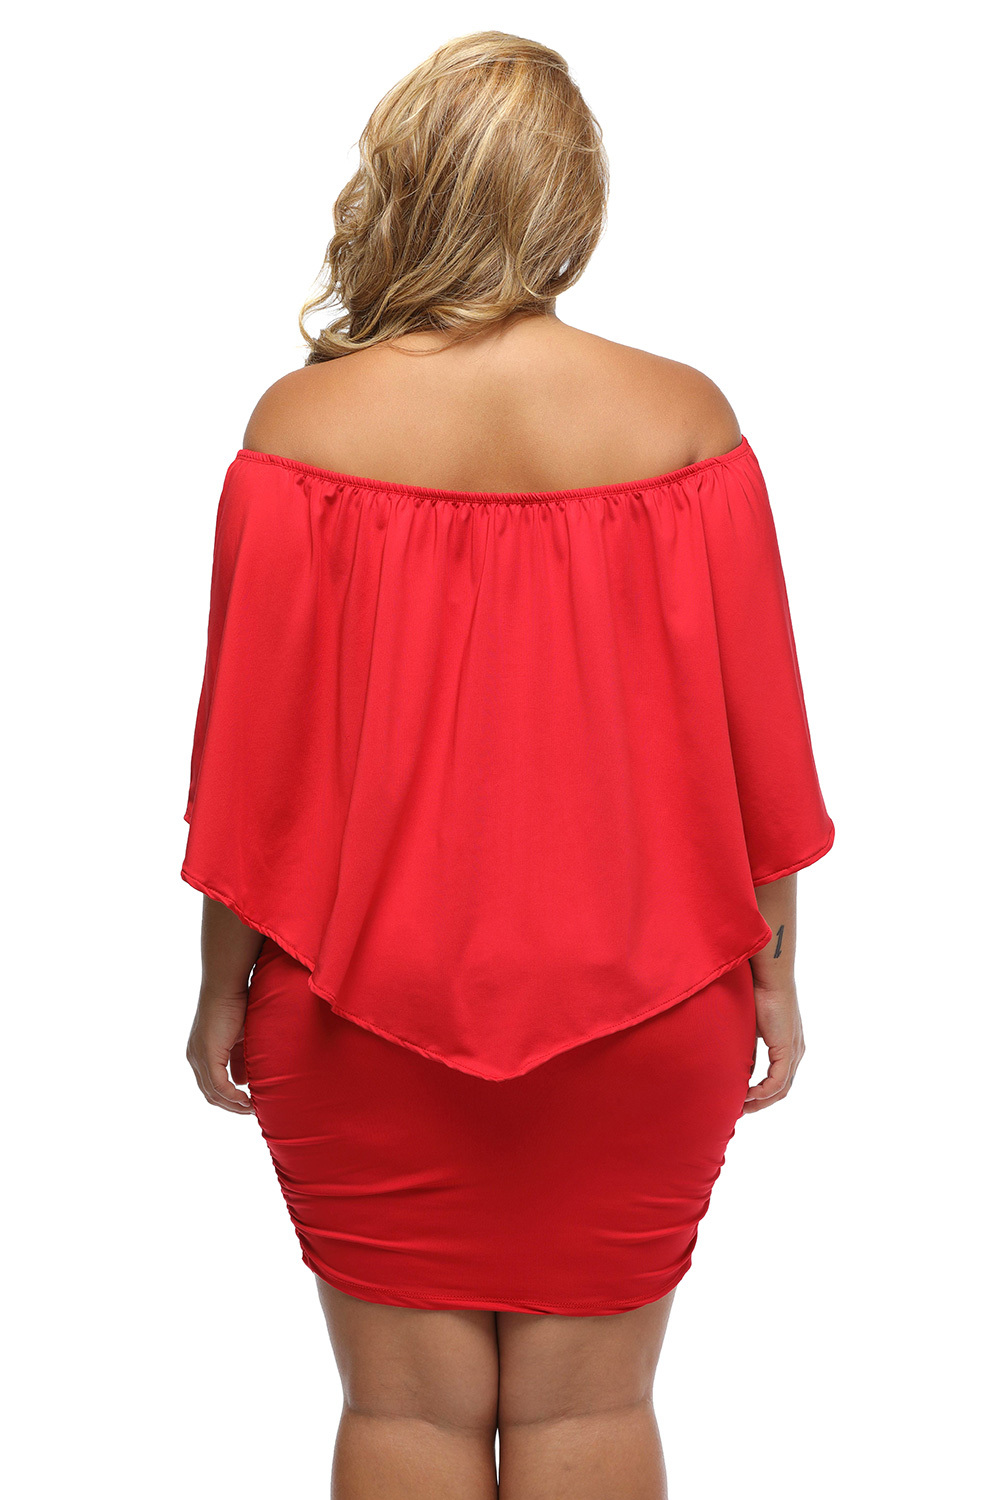 Plus size clothing 5x red black ruffle top mini bodycon for Size 5x mens dress shirts